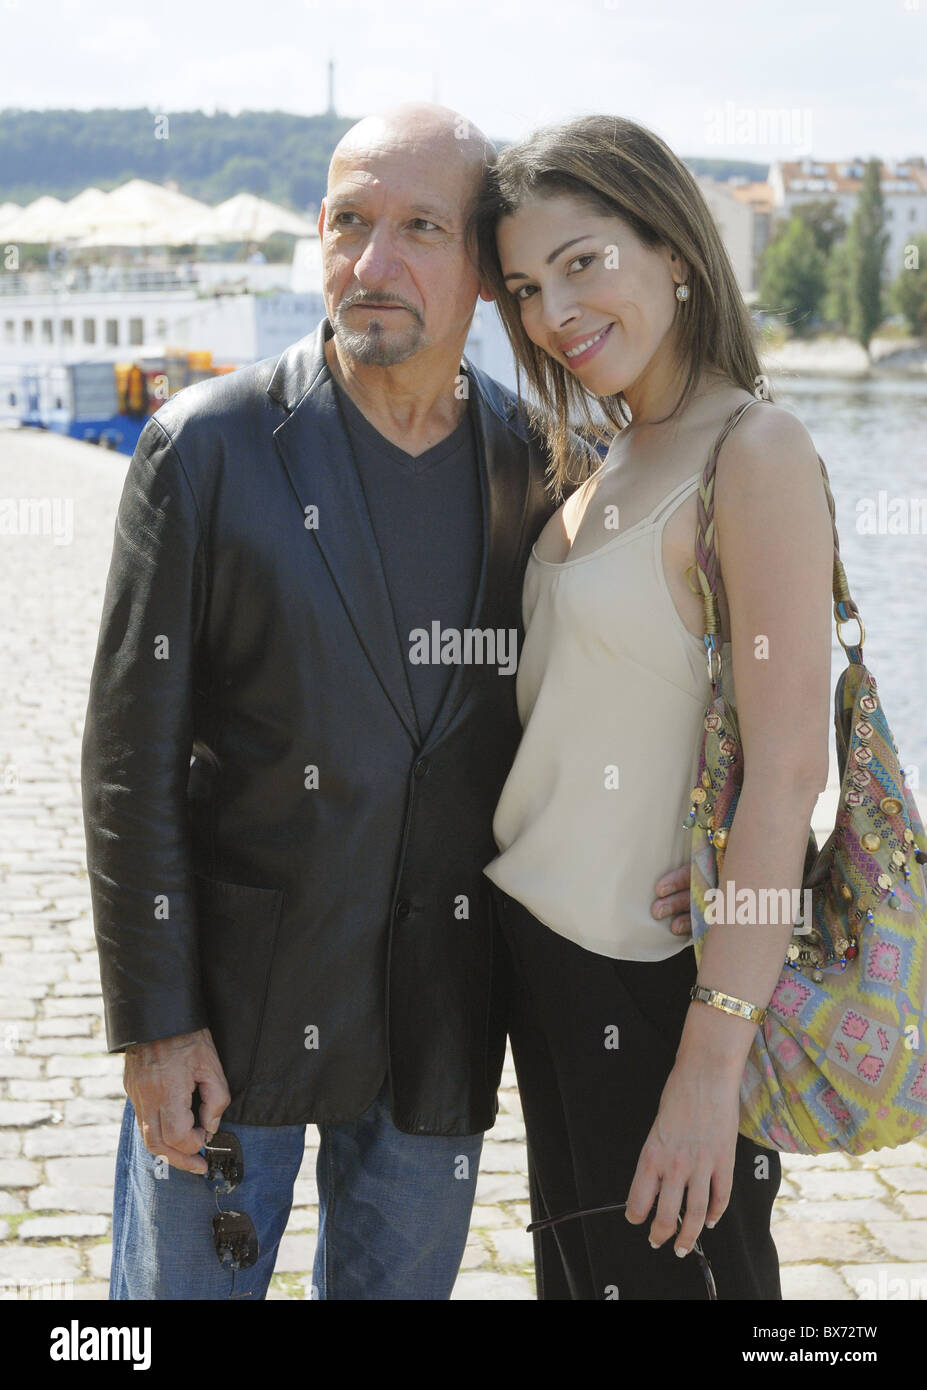 British actor Sir Ben Kingsley Oscar-winner for the title role in Gandhi and his wife actress Daniela Lavender pose - Stock Image